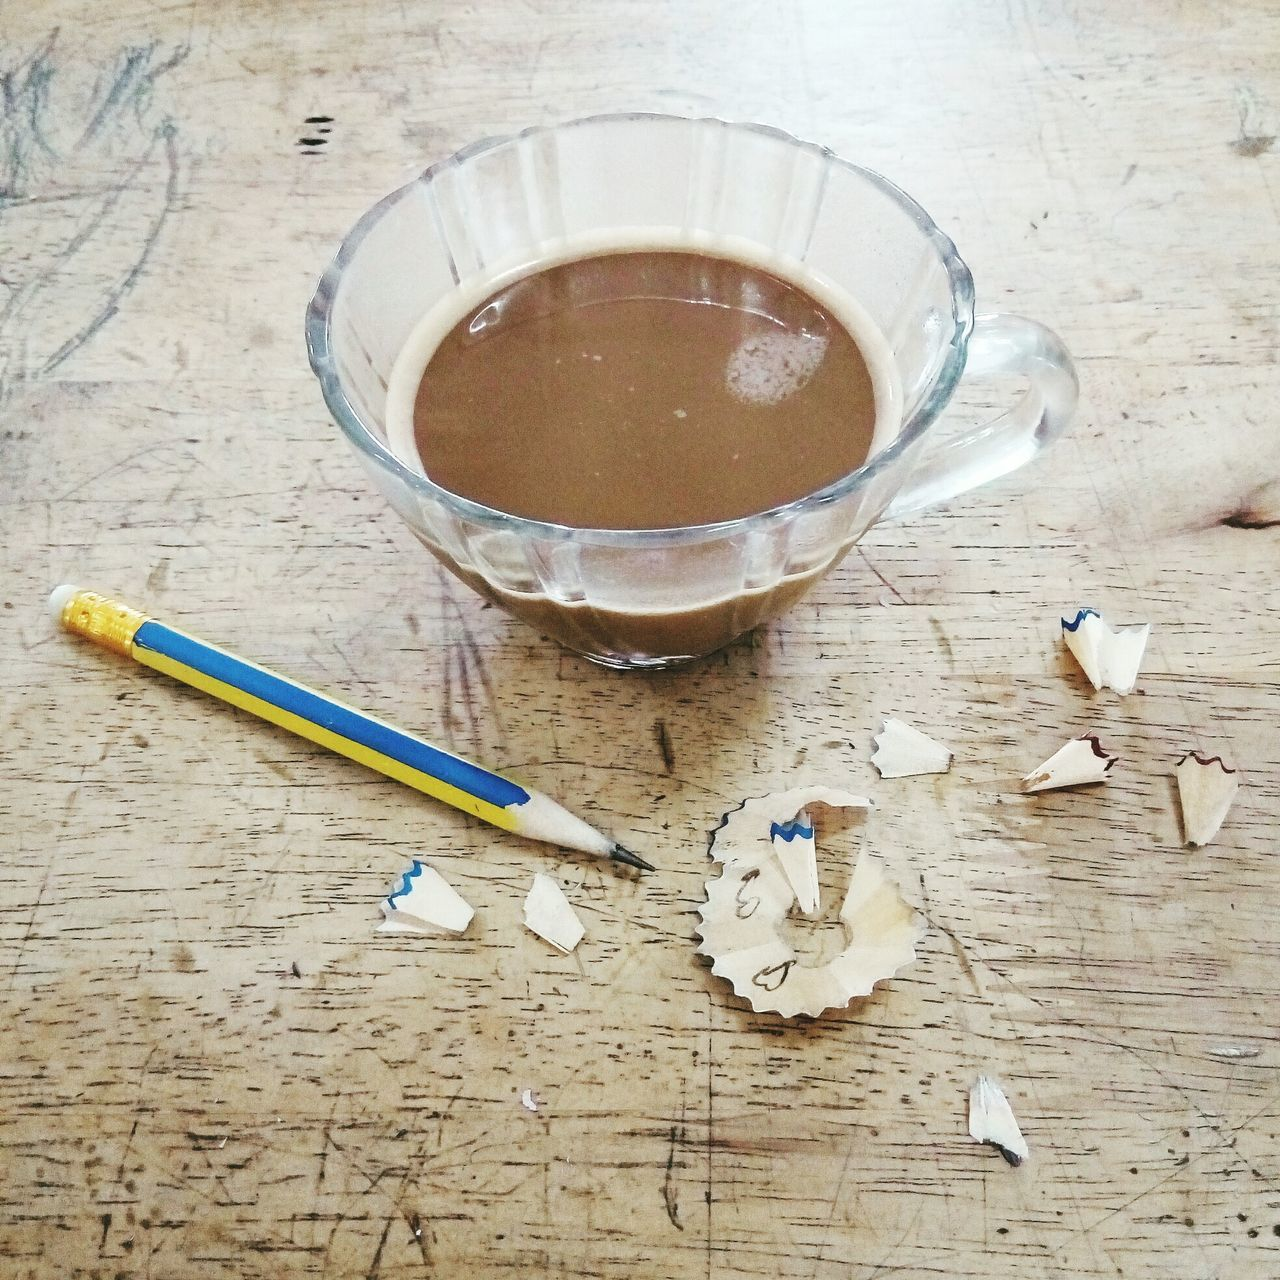 High Angle View Of Pencil By Tea Cup On Wooden Table